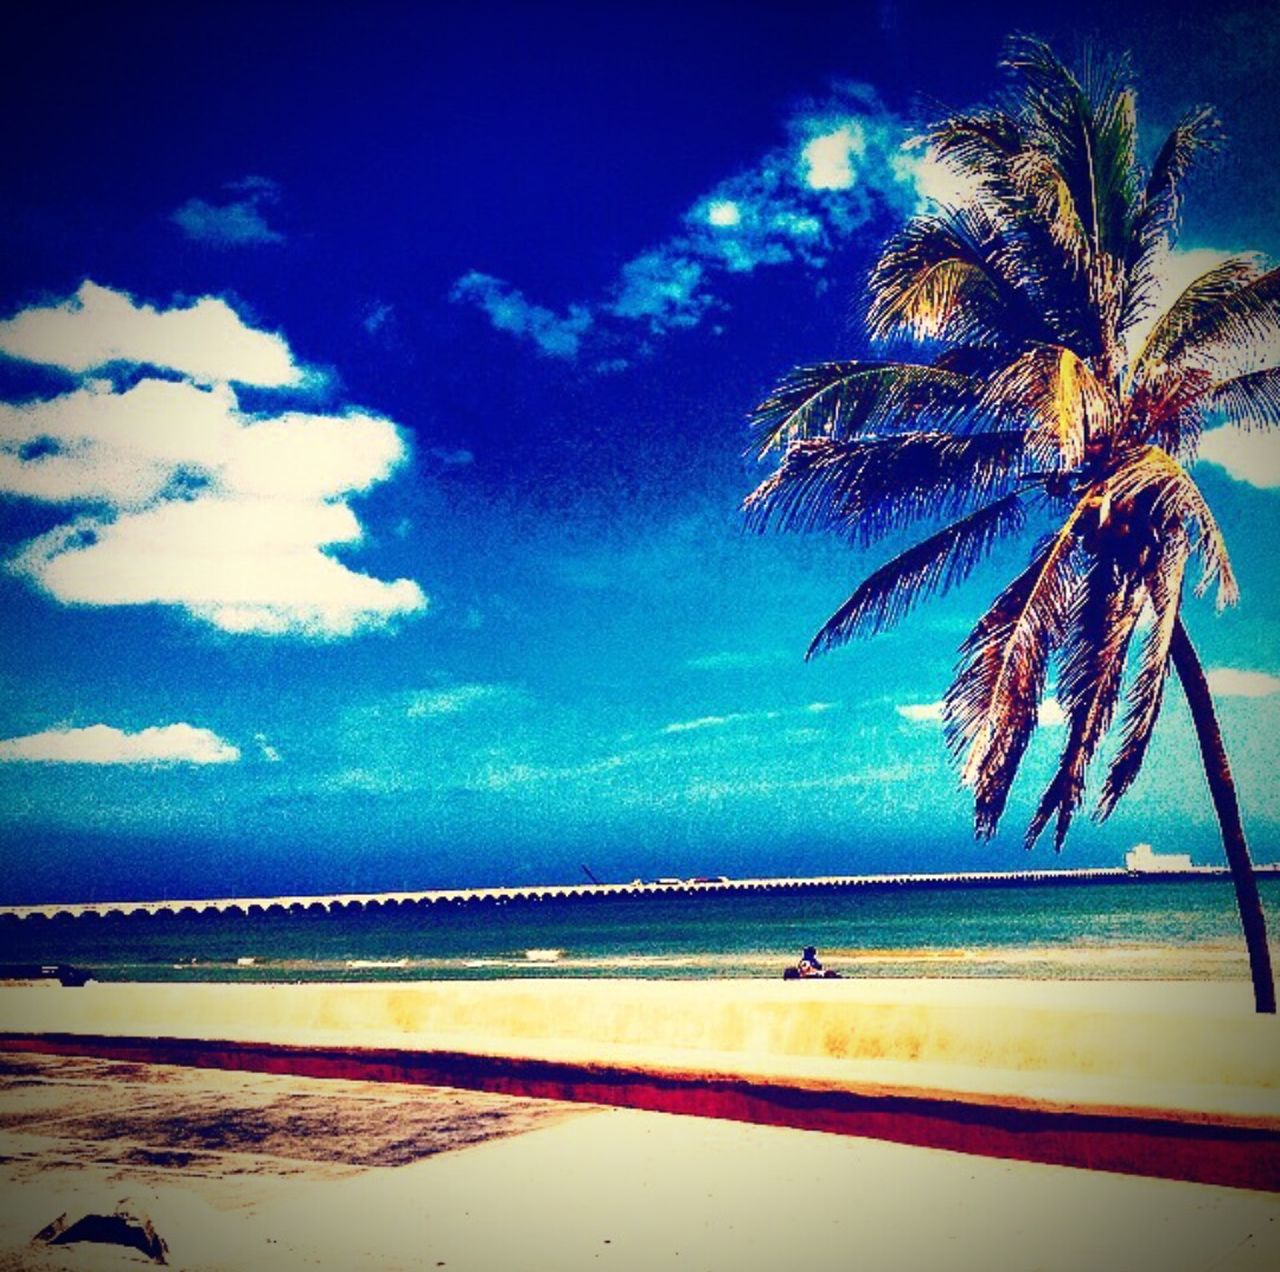 beach, palm tree, sea, sky, water, tranquil scene, scenics, beauty in nature, horizon over water, tranquility, nature, blue, sand, tree, cloud - sky, no people, outdoors, day, vacations, growth